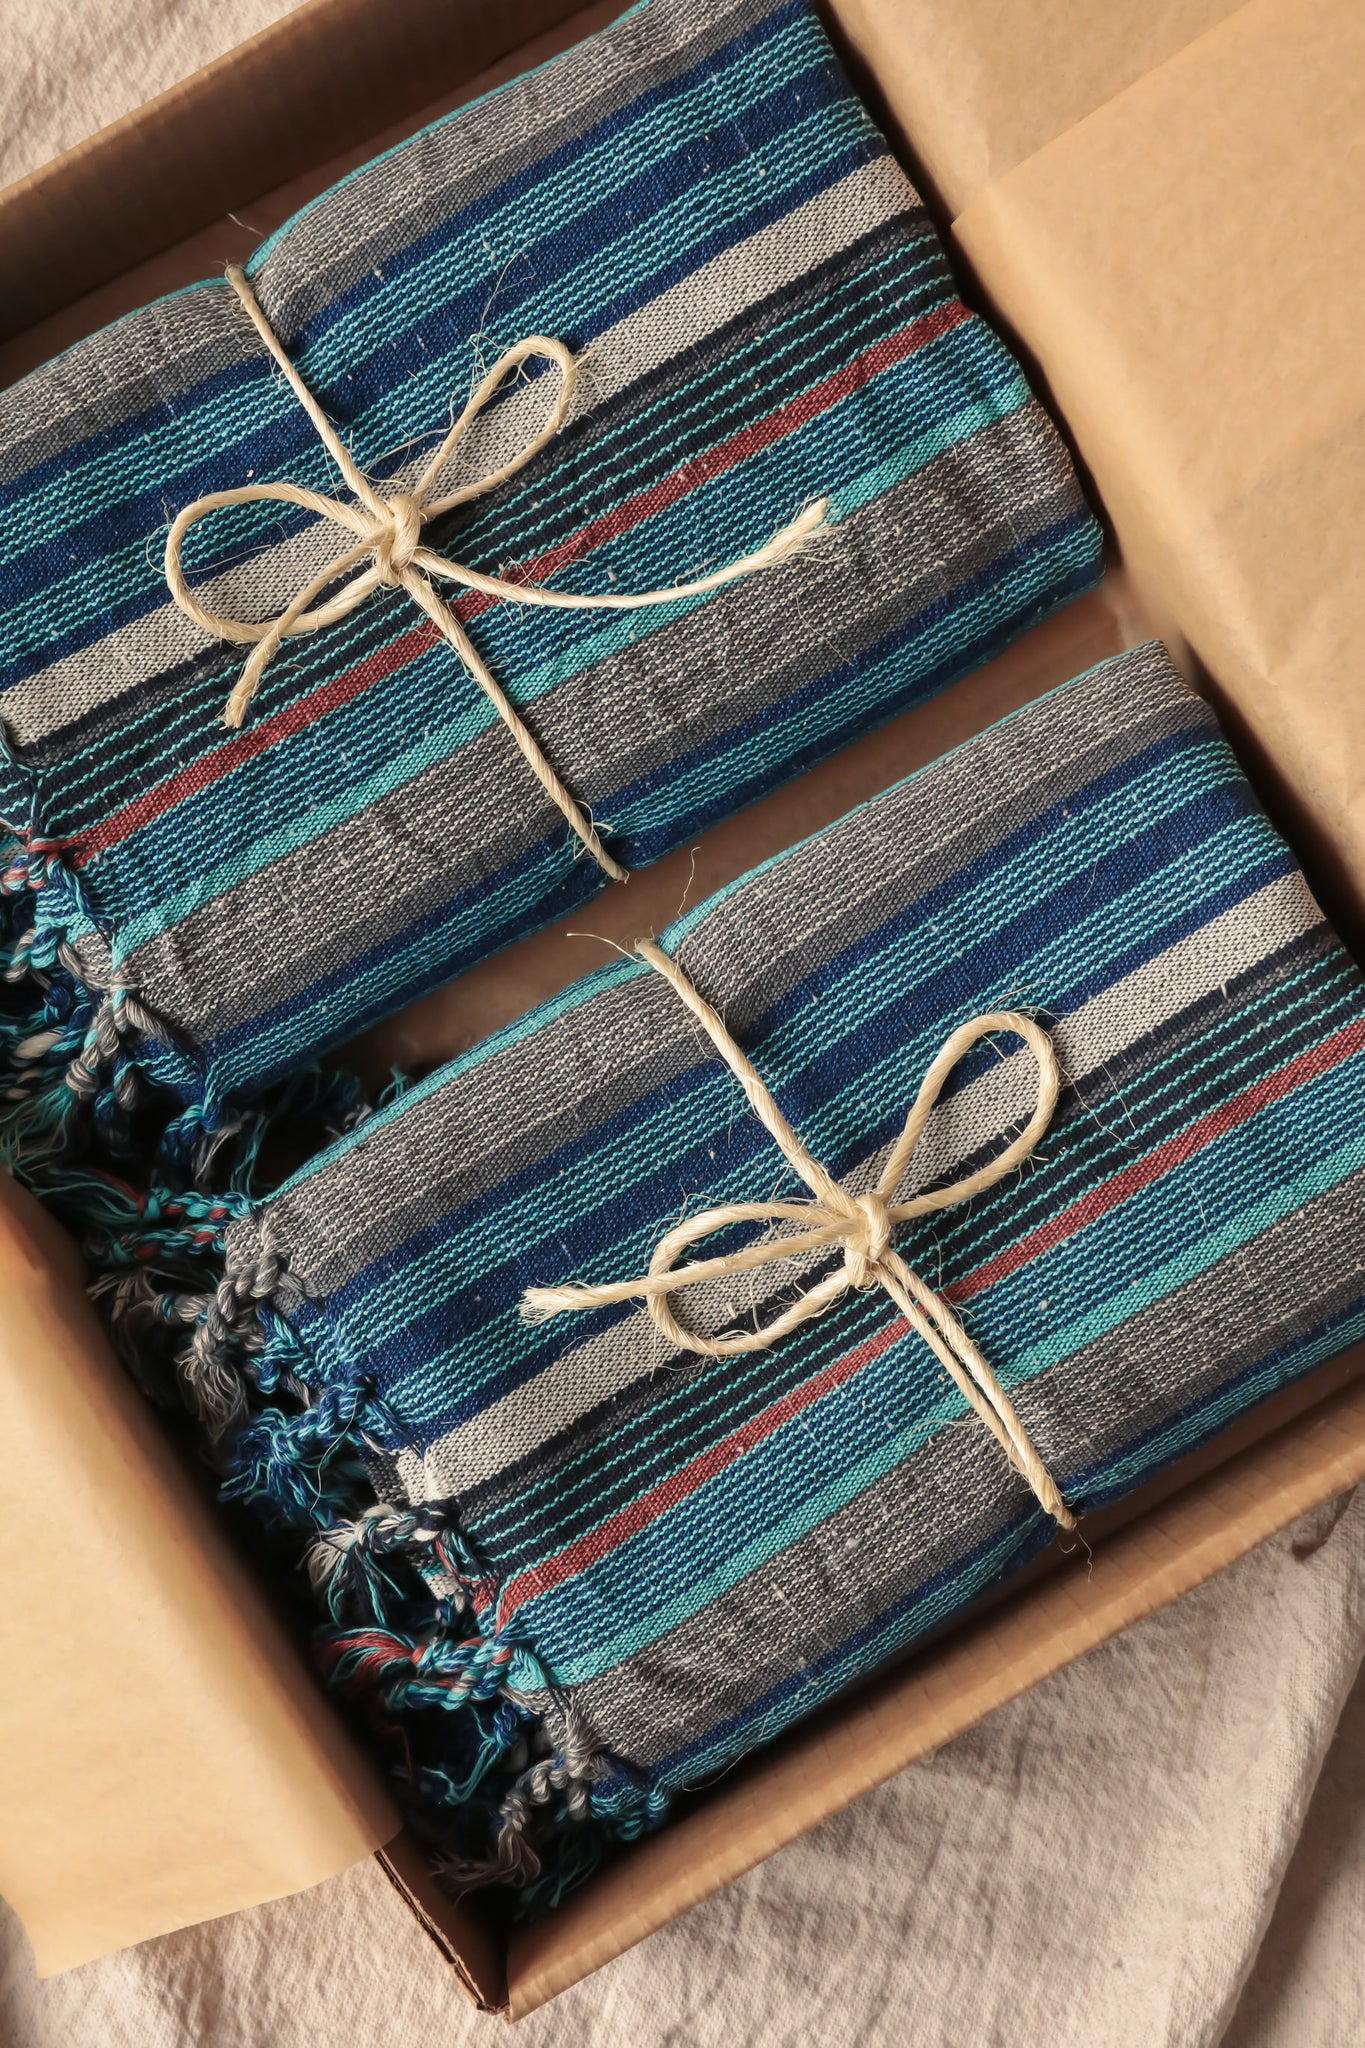 Limited Edition 'Sahil' Handwoven Turkish Towel